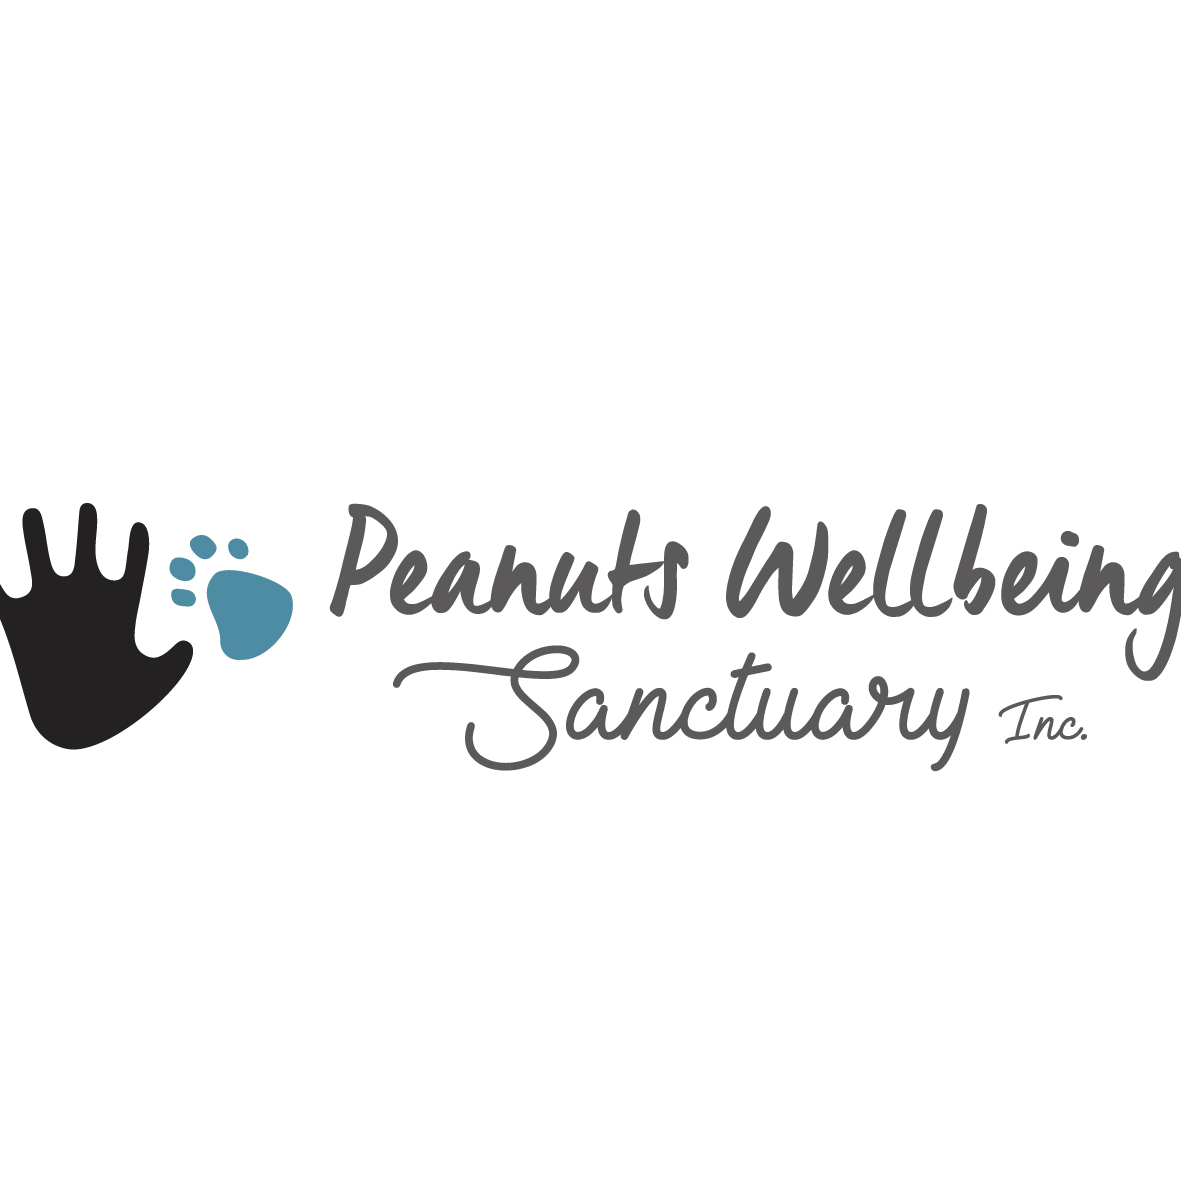 The Peanuts Wellbeing Sanctuary needs your help